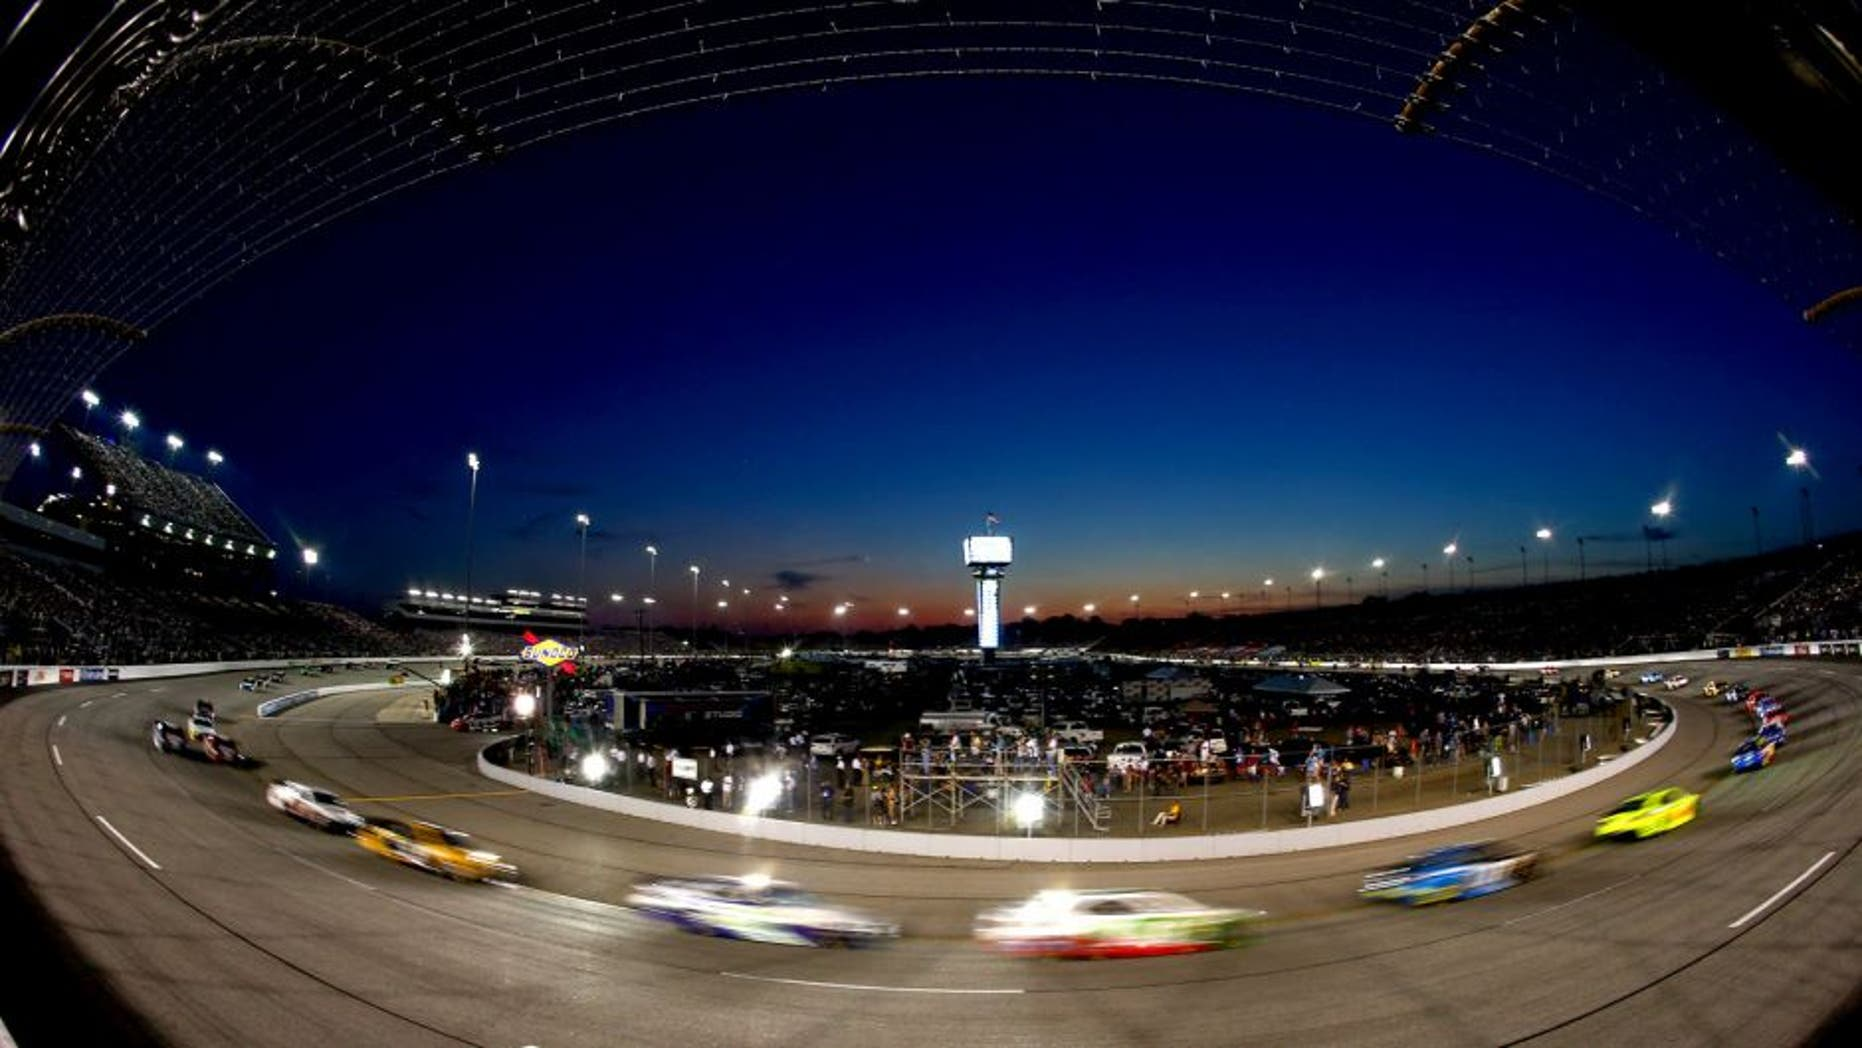 RICHMOND, VA - SEPTEMBER 07: General view of cars racing the NASCAR Sprint Cup Series 56th Annual Federated Auto Parts 400 at Richmond International Raceway on September 7, 2013 in Richmond, Virginia. (Photo by Jonathan Ferrey/NASCAR via Getty Images)